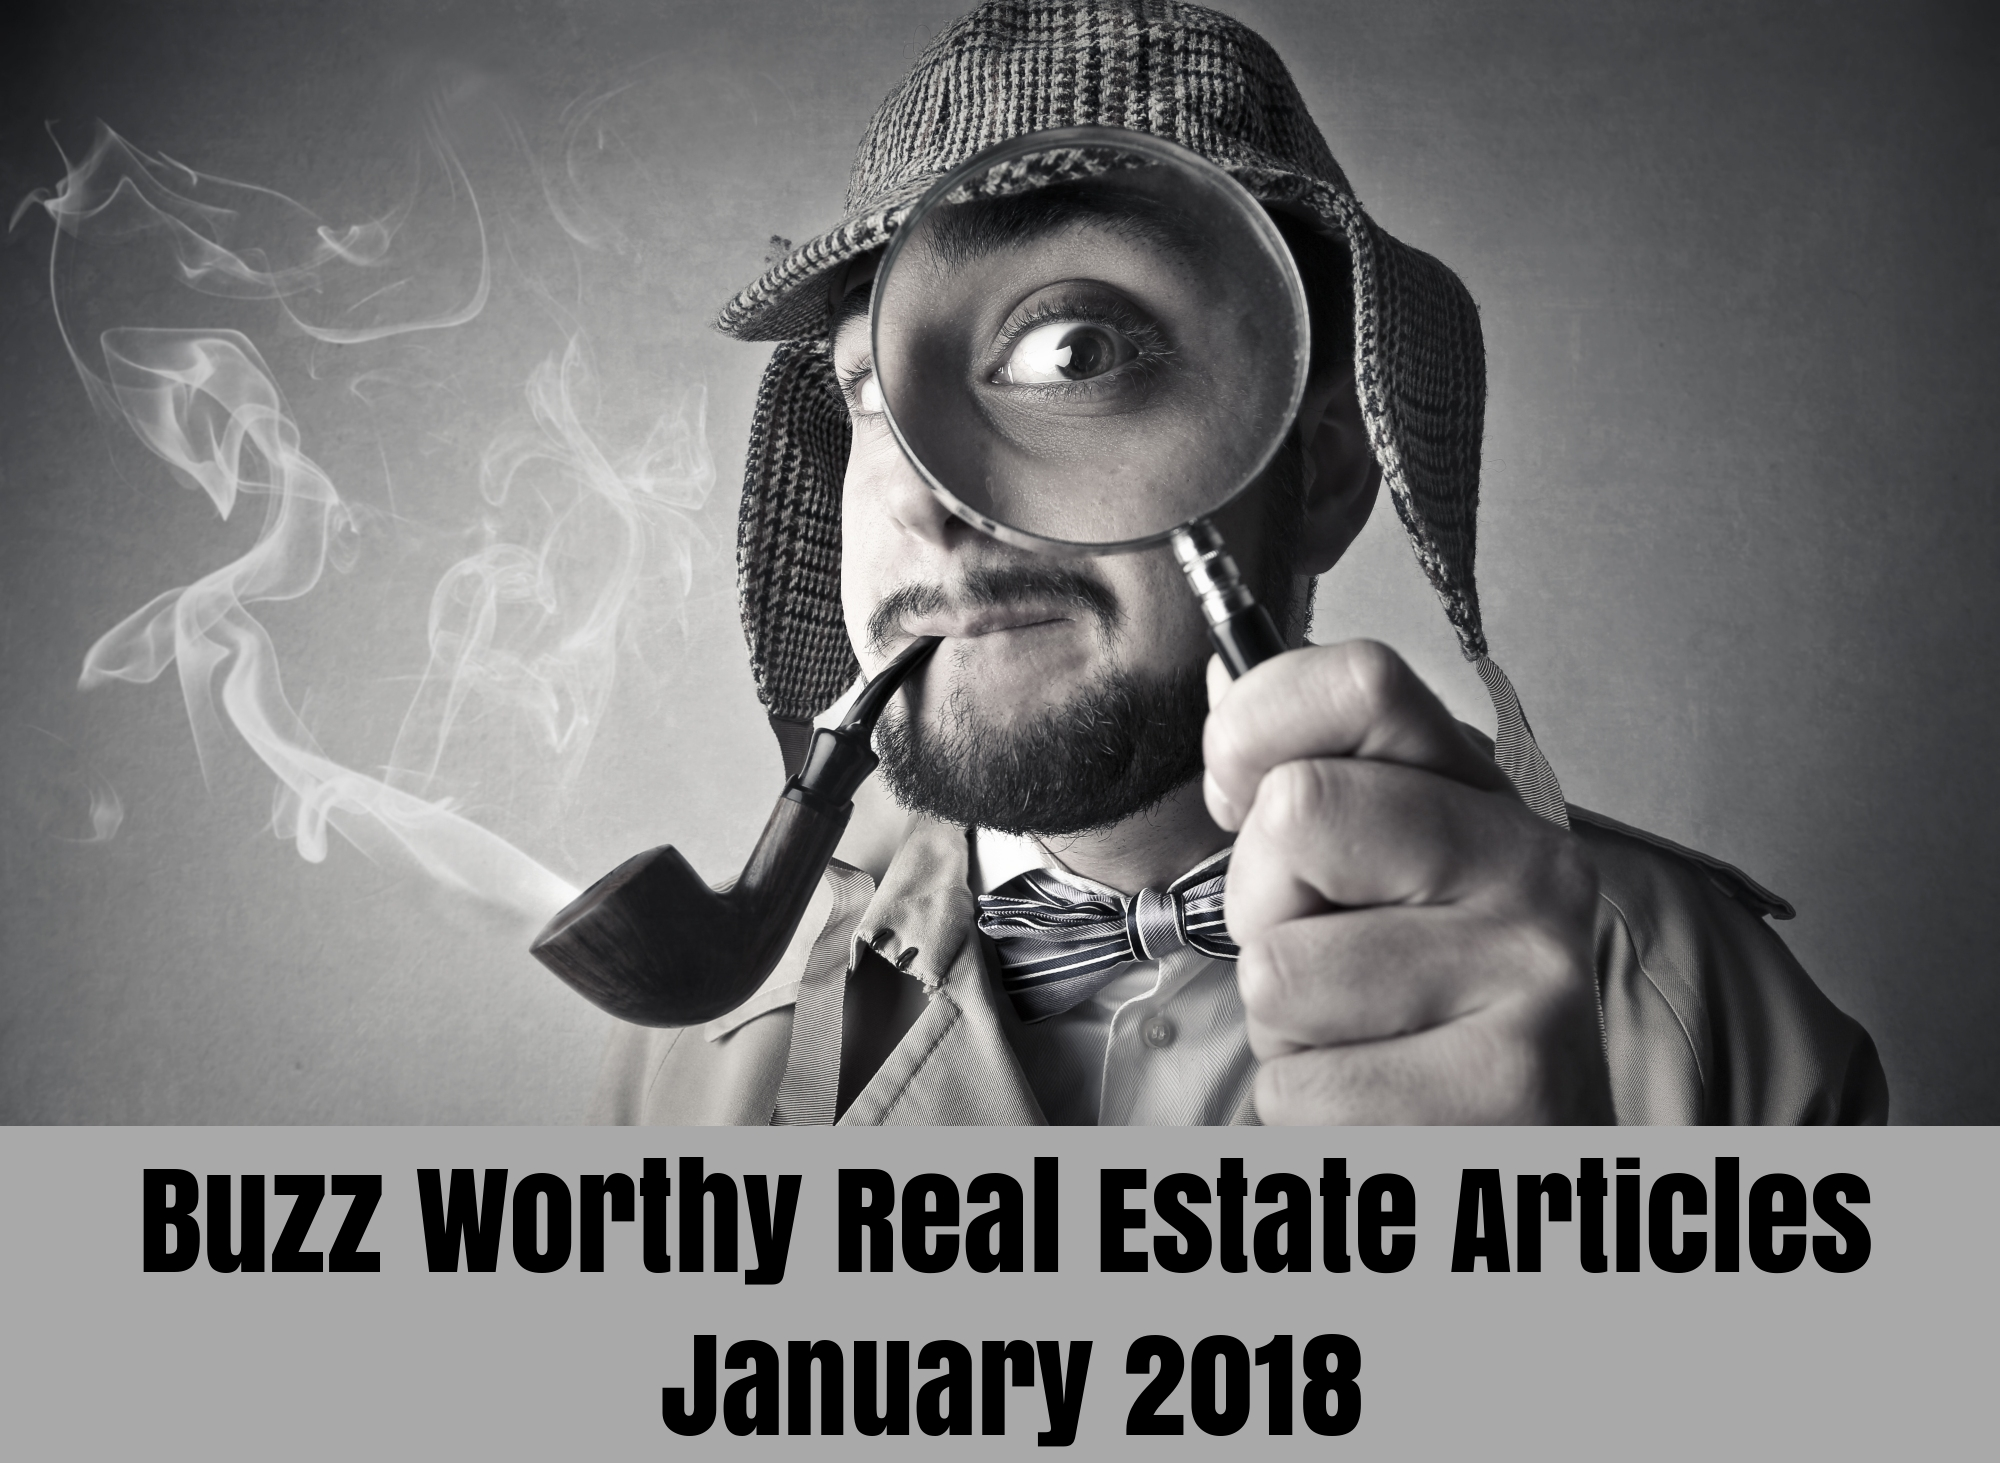 Buzz Worthy Real Estate Articles - January 2018